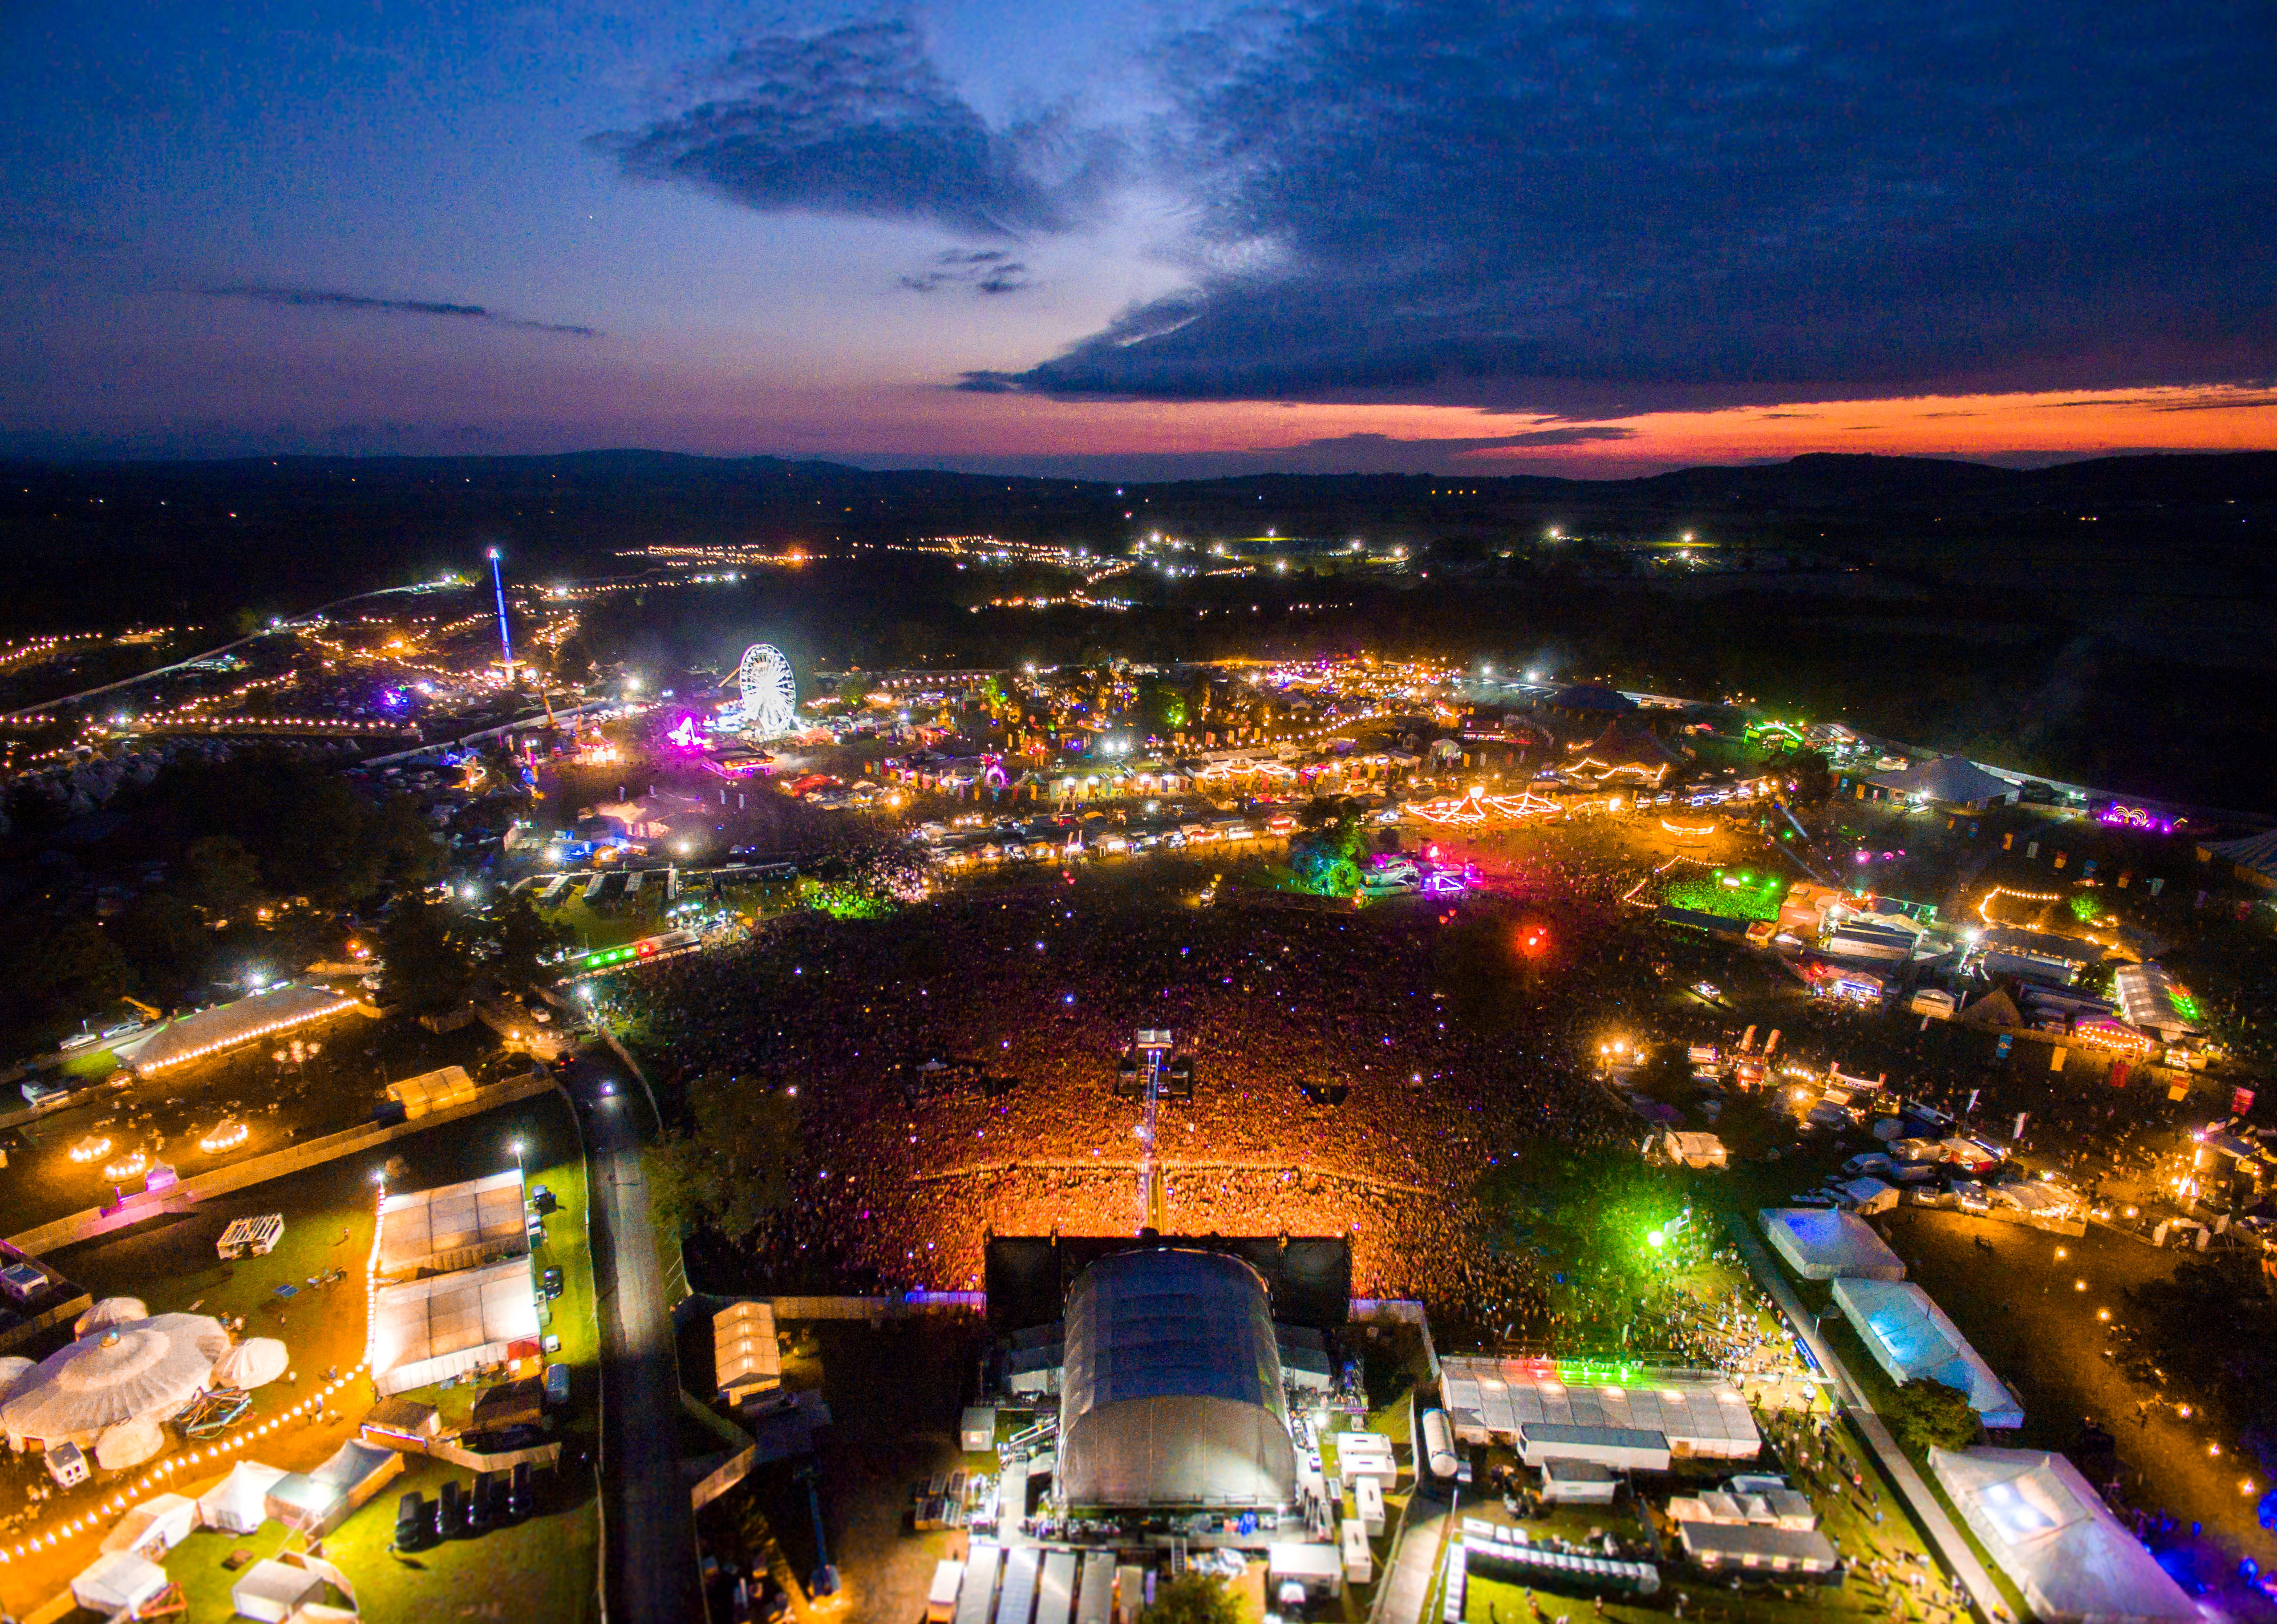 Final Day Of Electric Picnic